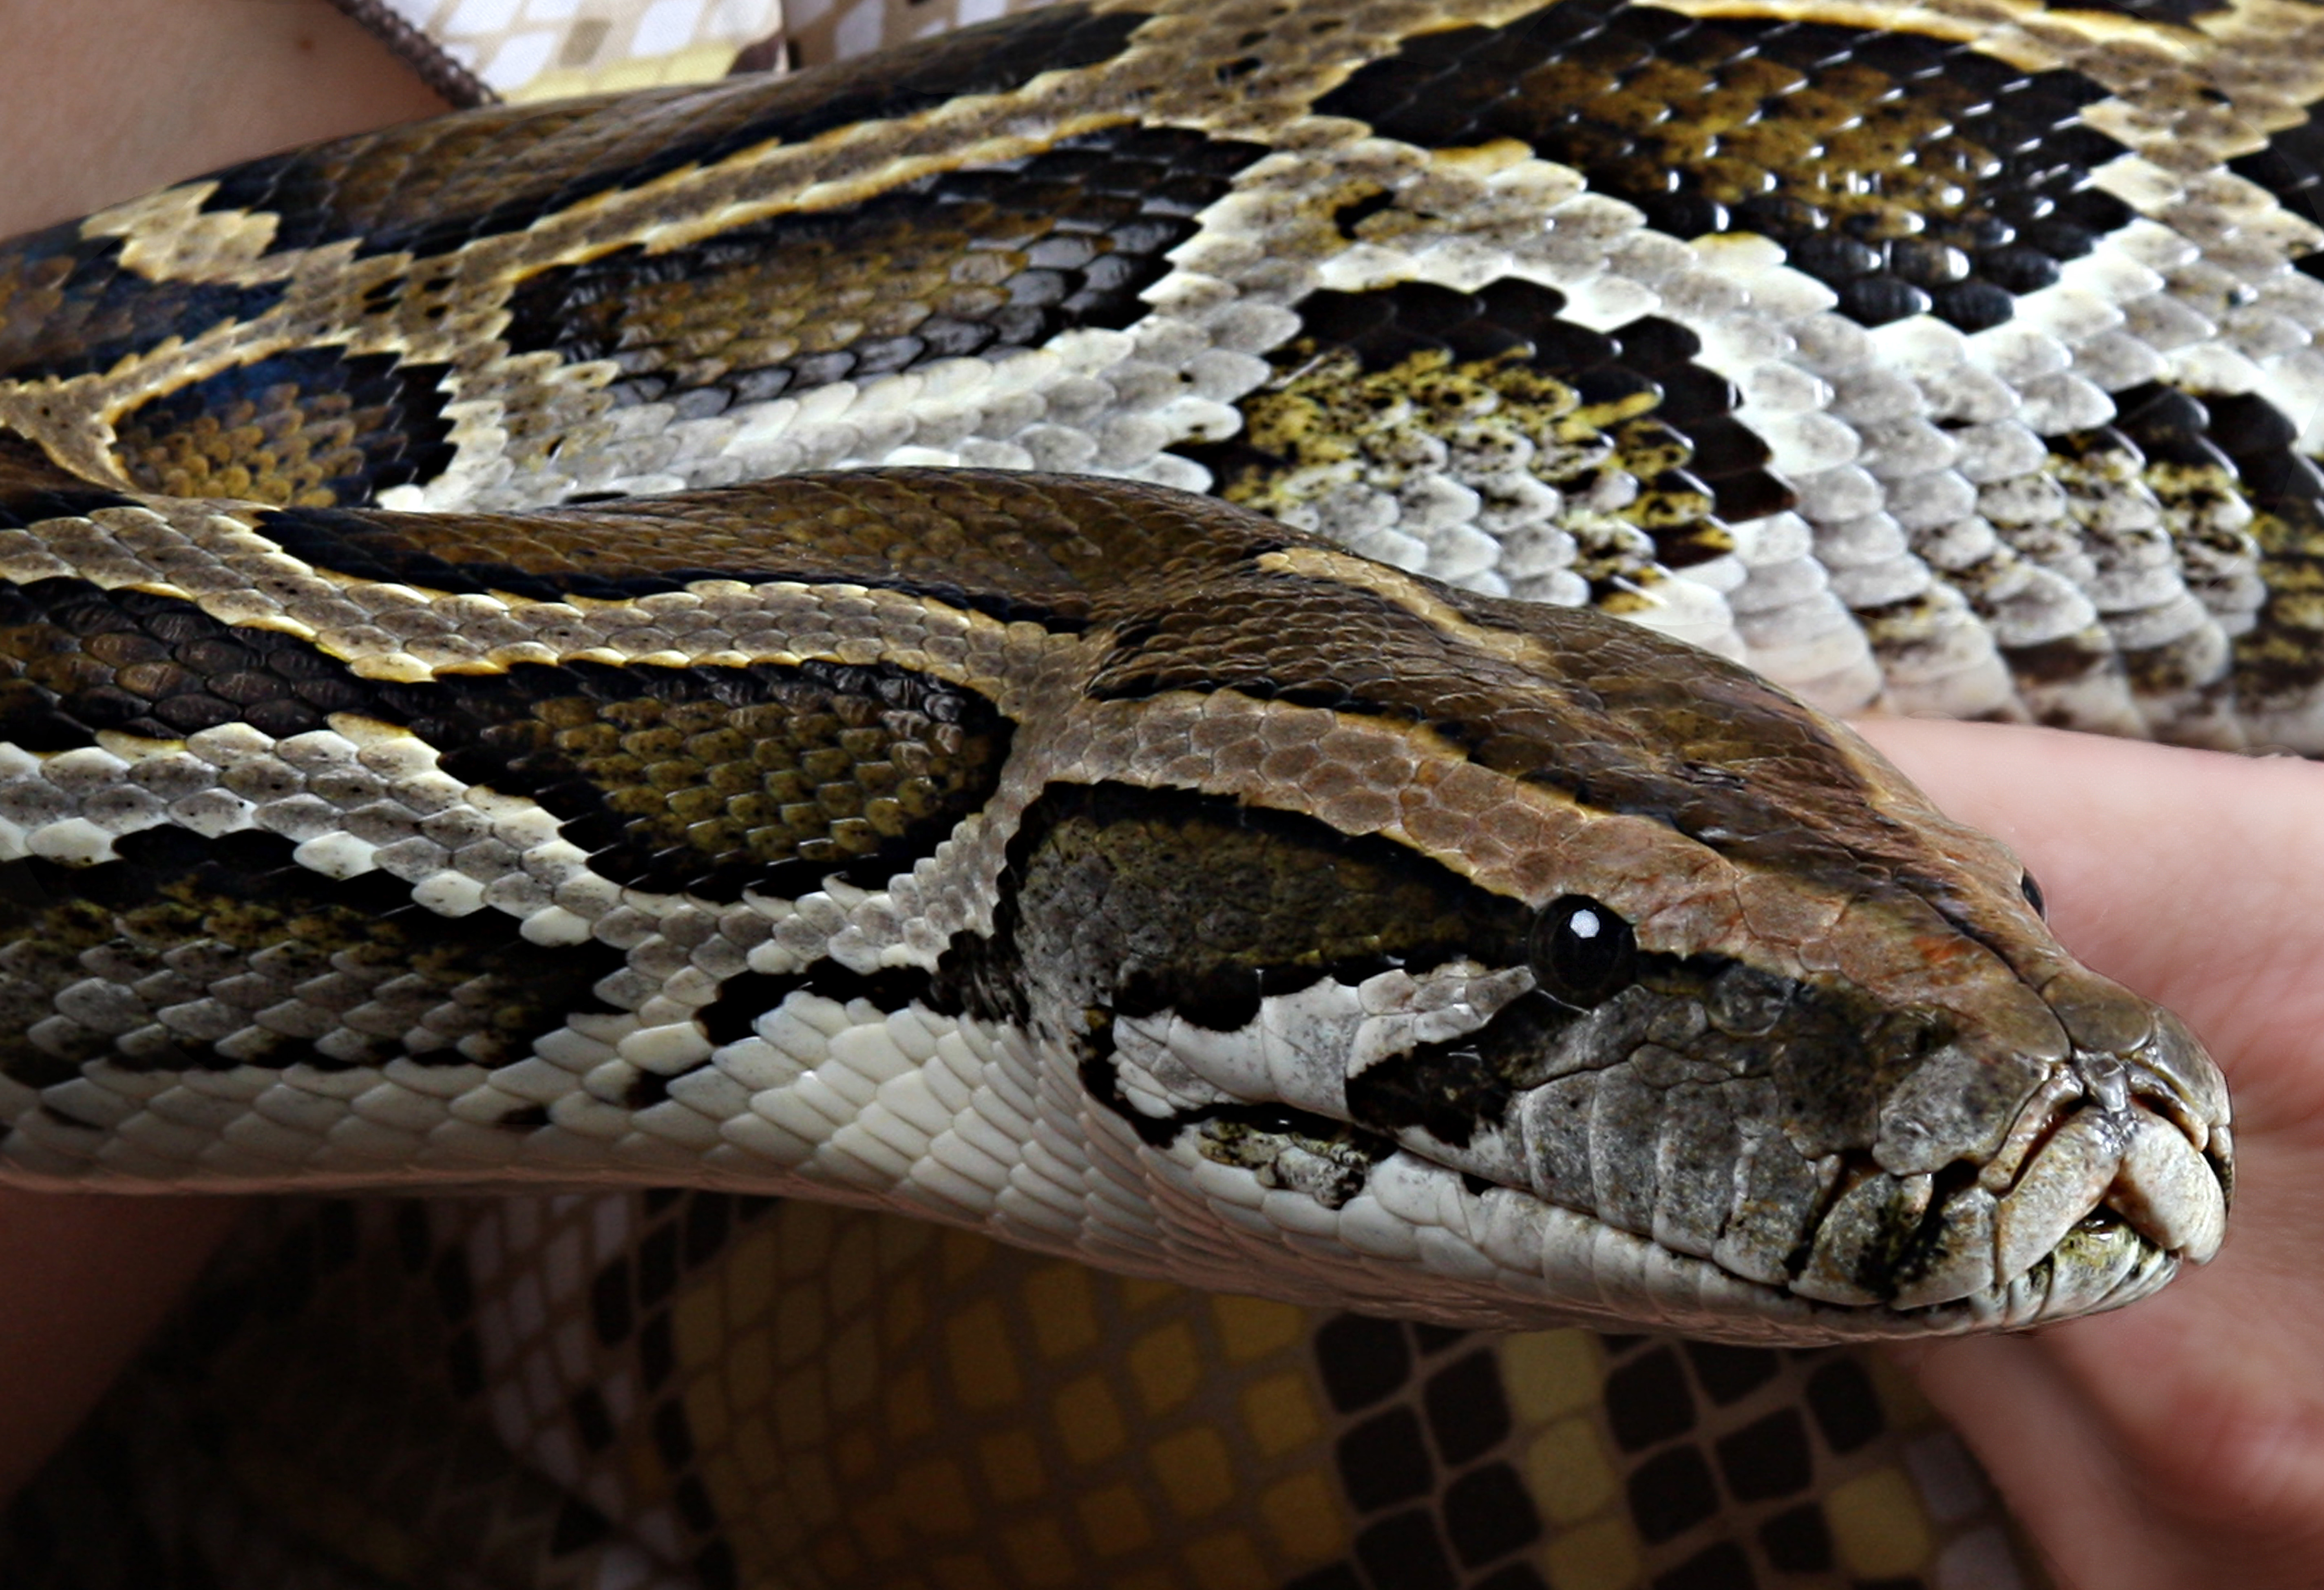 Sweet Pea – Burmese Python. Very sweet gentle giant. She has been through a lot and still very sweet natured.